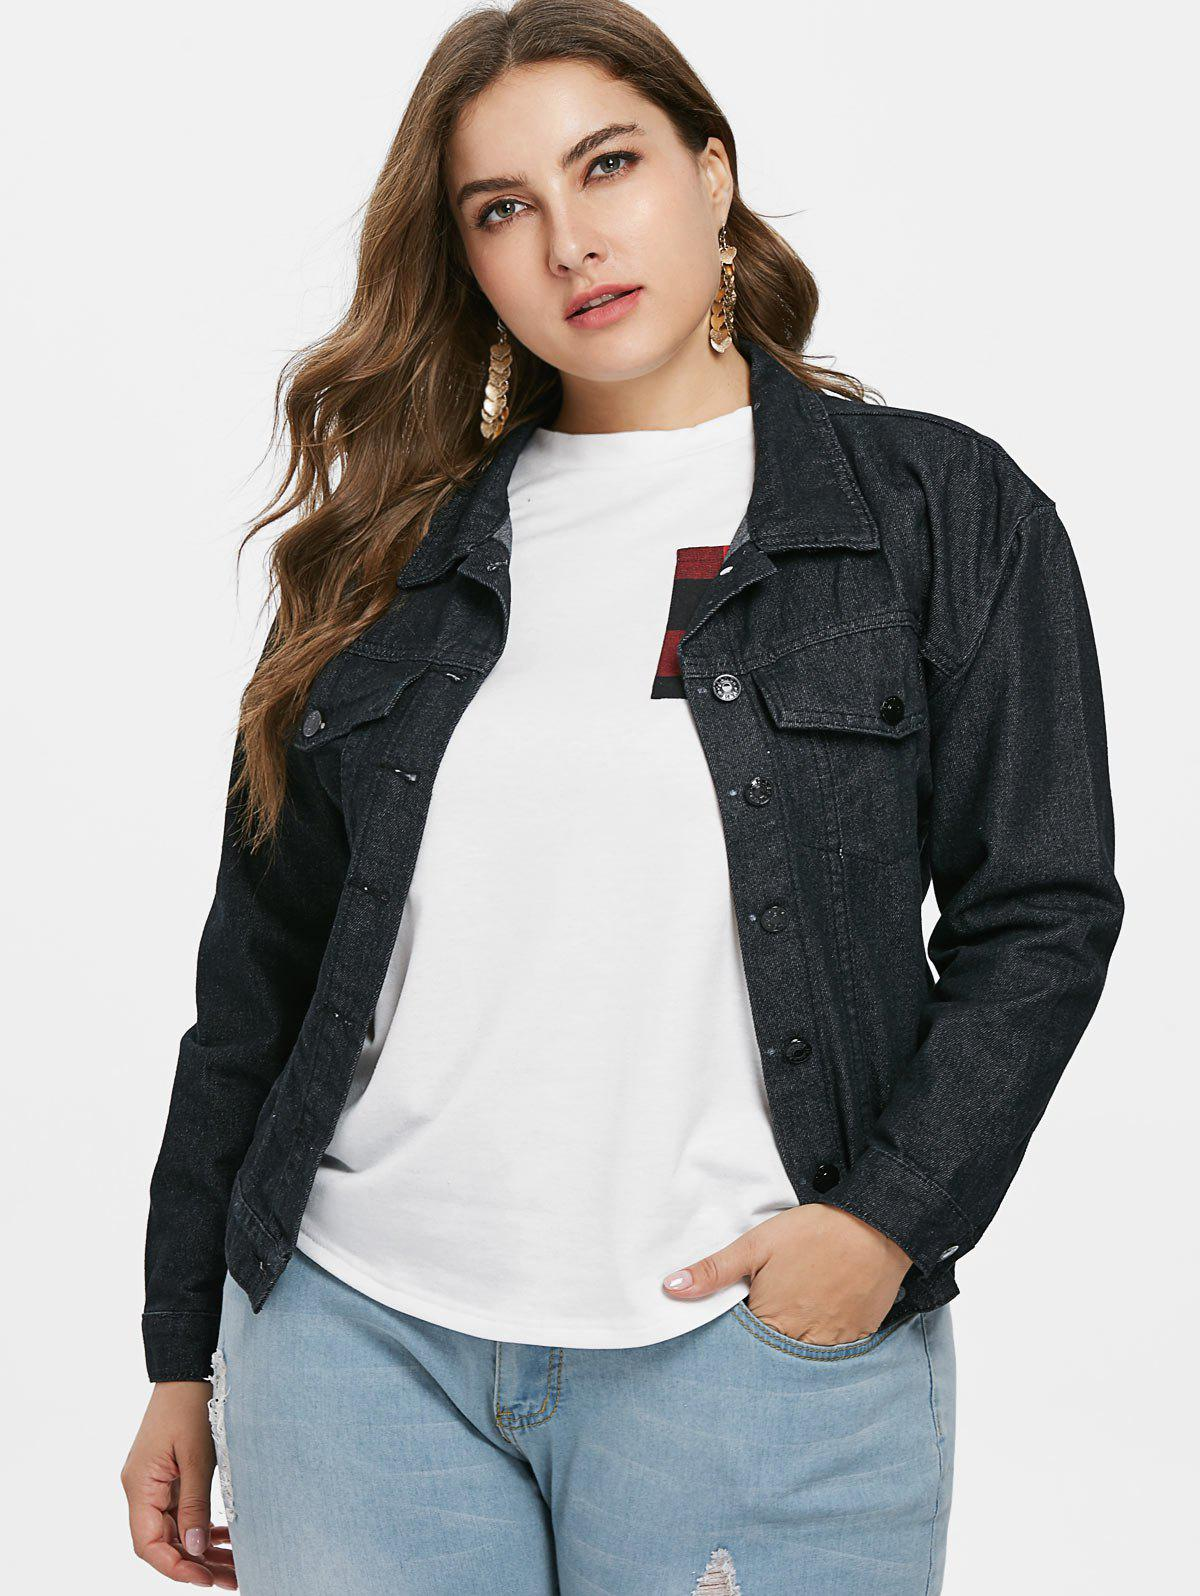 65f96015426 2019 Embroidered Plus Size Jean Jacket